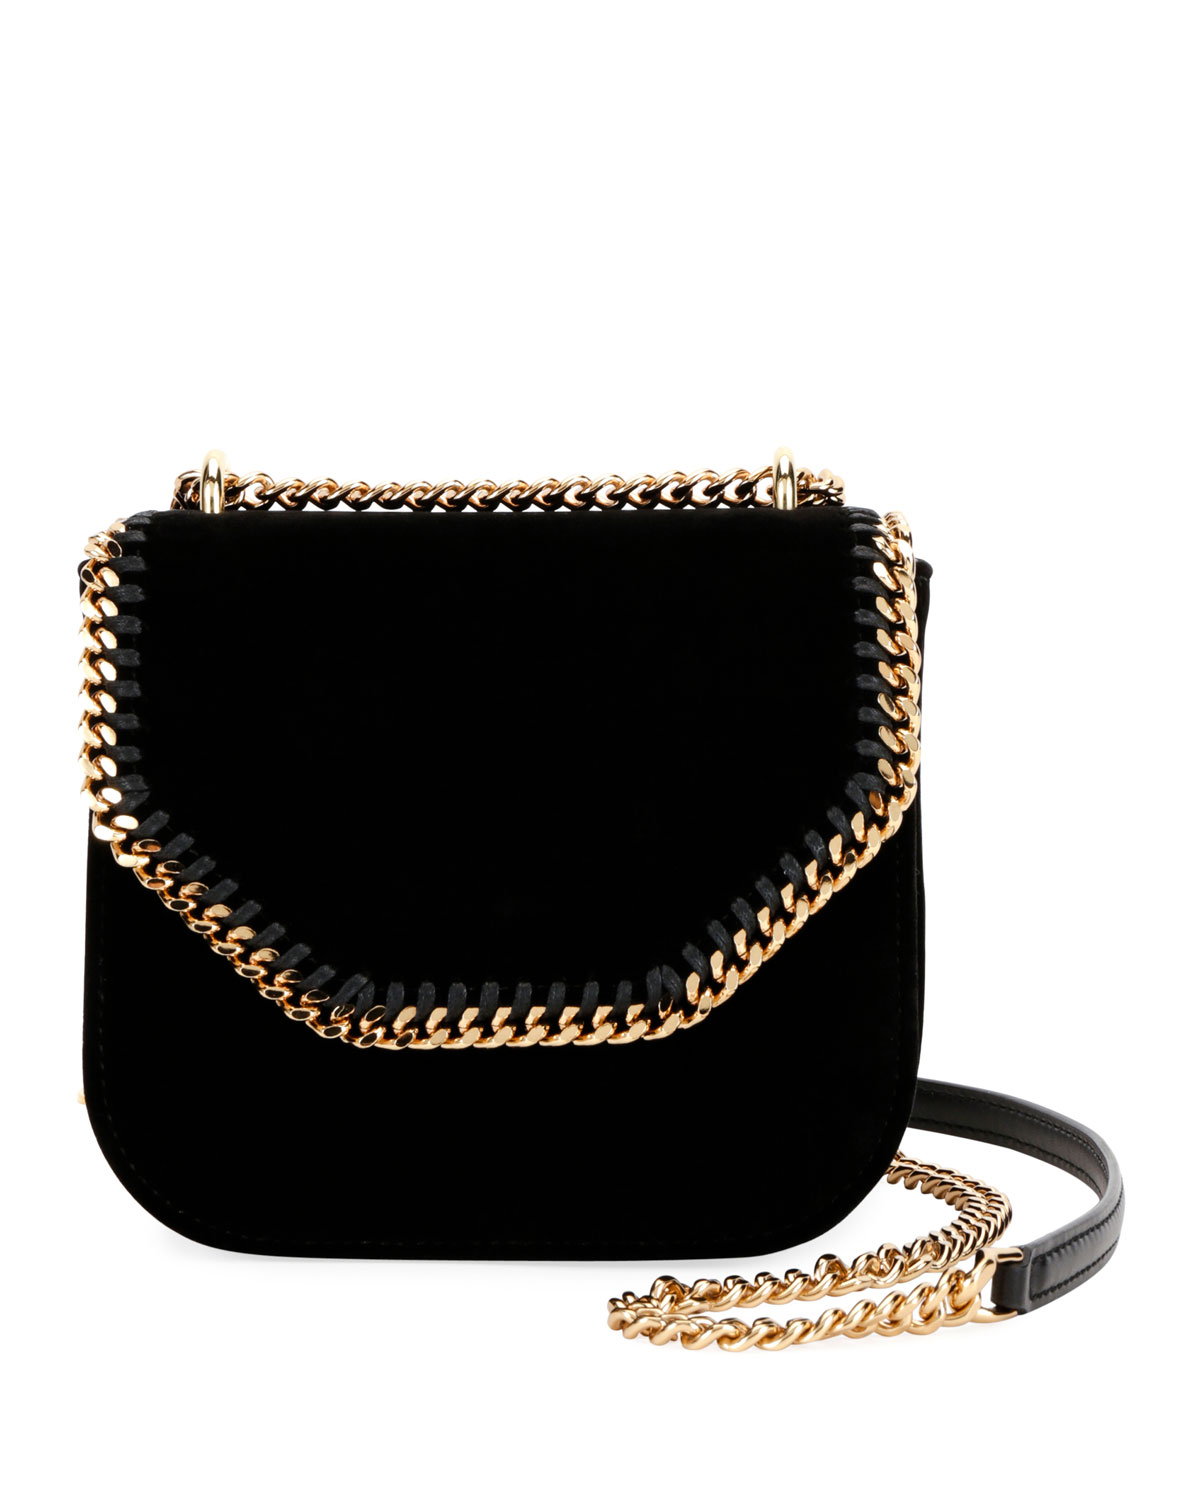 65e9af8ba296 Stella McCartney Falabella Mini Velvet Shoulder Bag